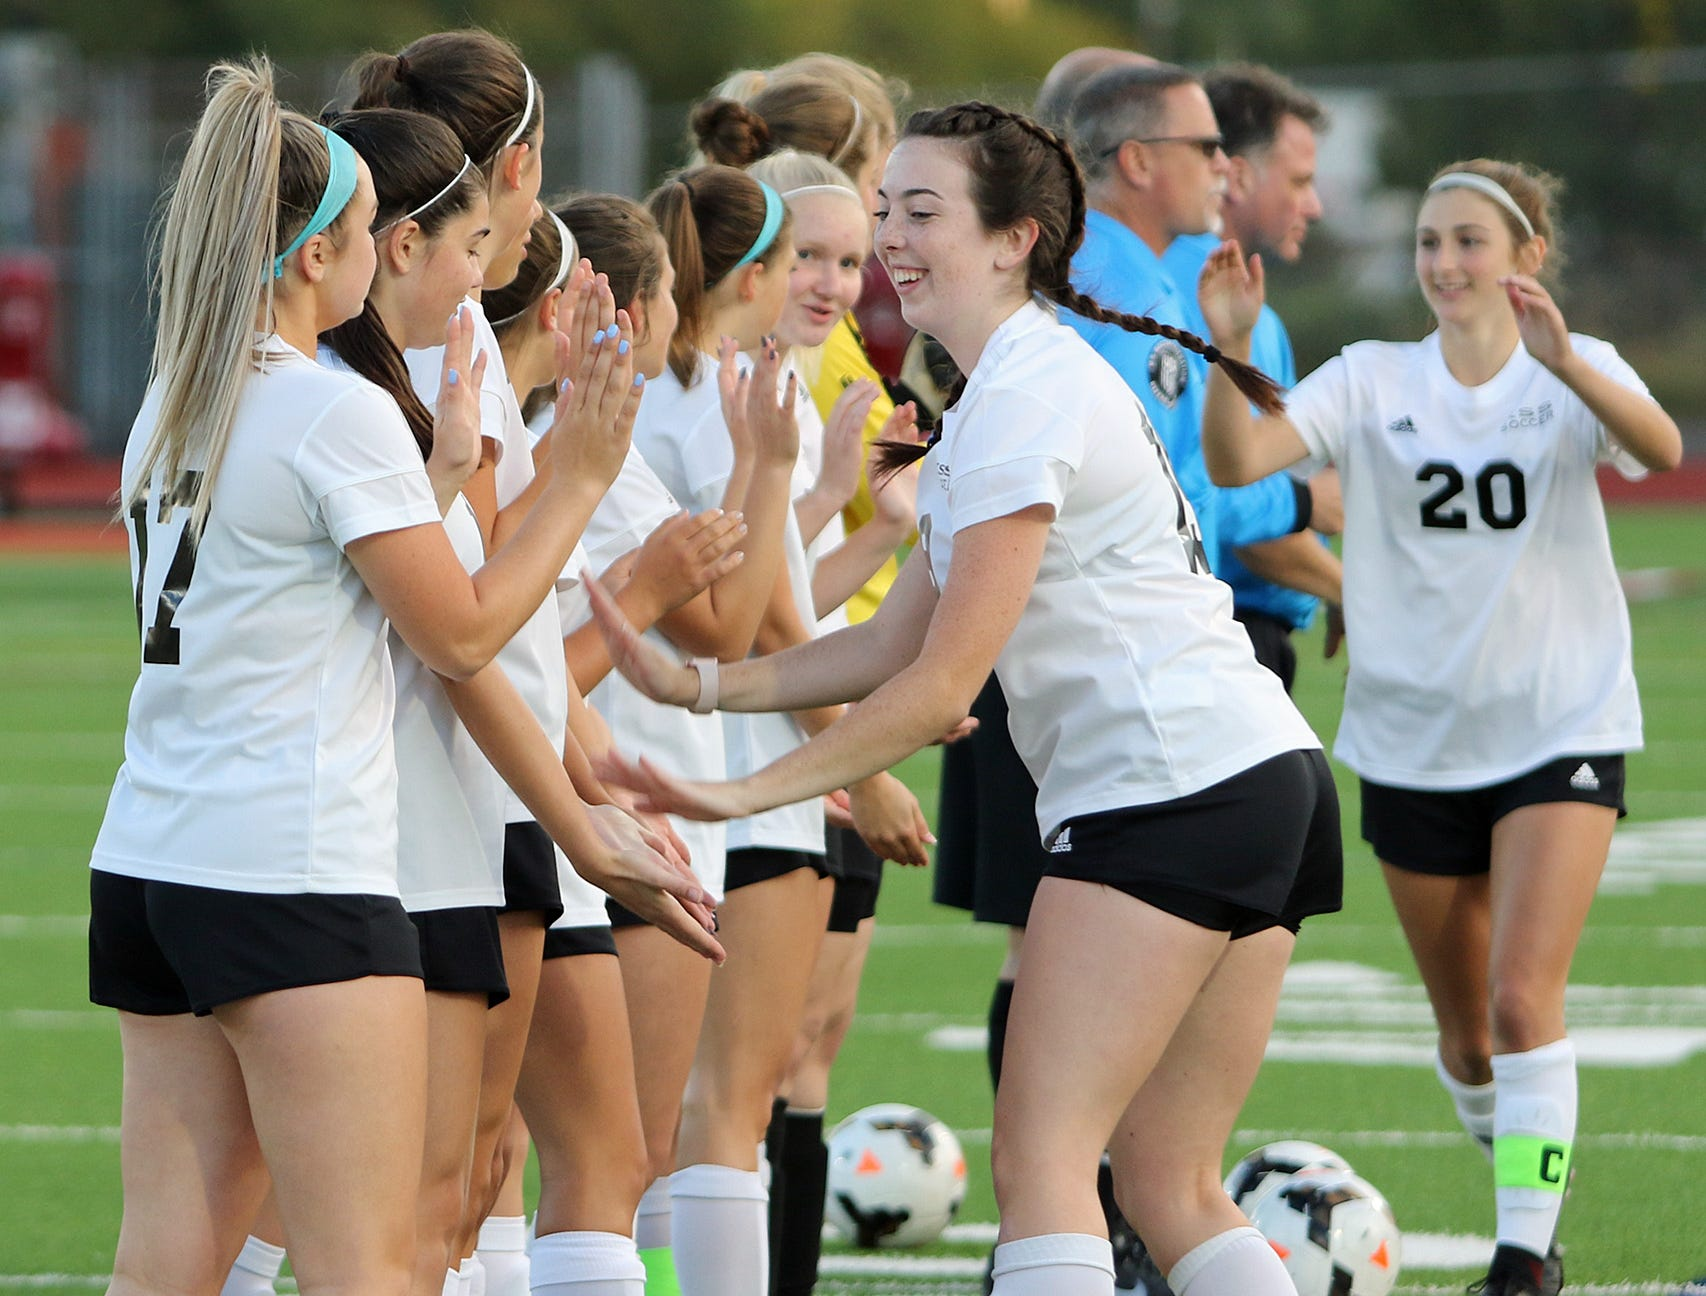 Klahowya soccer players Sheala Haga, front, and Alyssa Peters work their way down the line during team introductions during a recent game against South Kitsap.